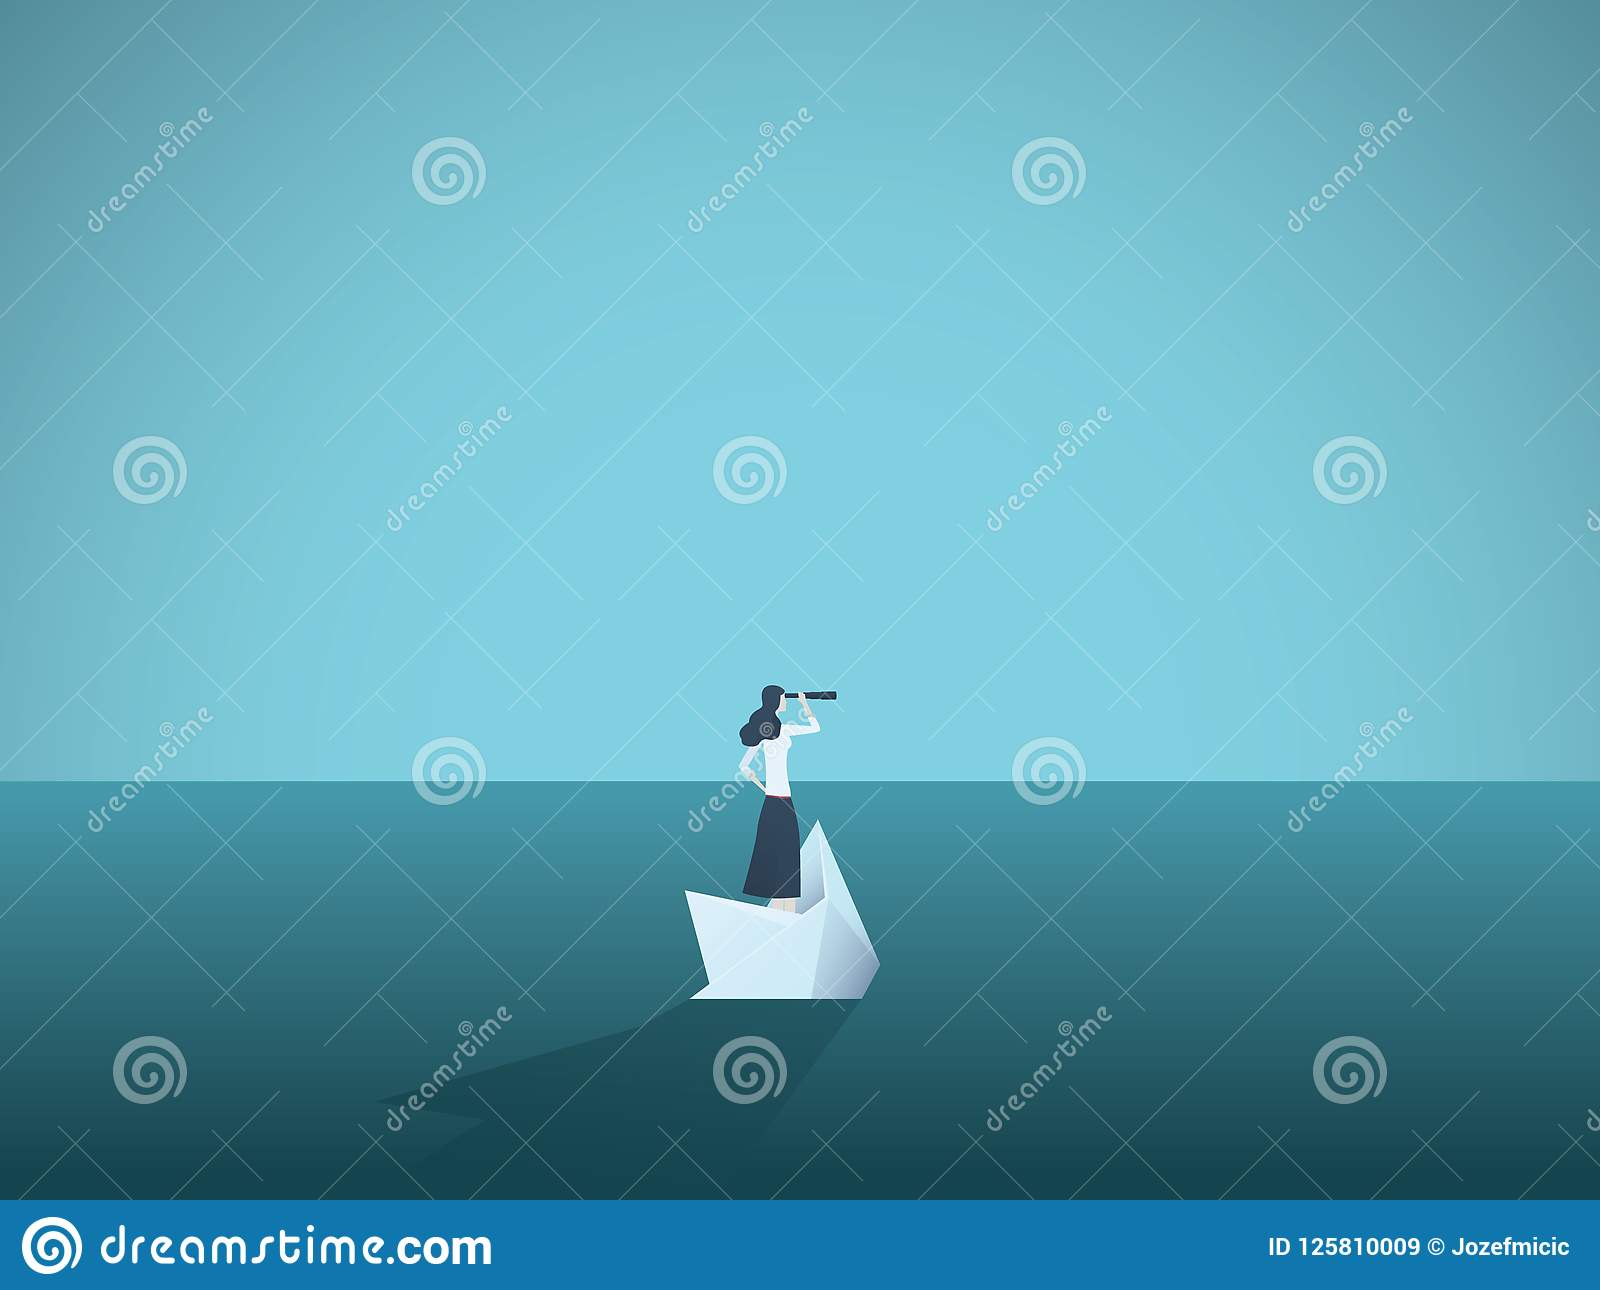 Businesswoman on a sinking ship, paper boat. Symbol of bankruptcy, failure but also new beginning, overcoming challenge.